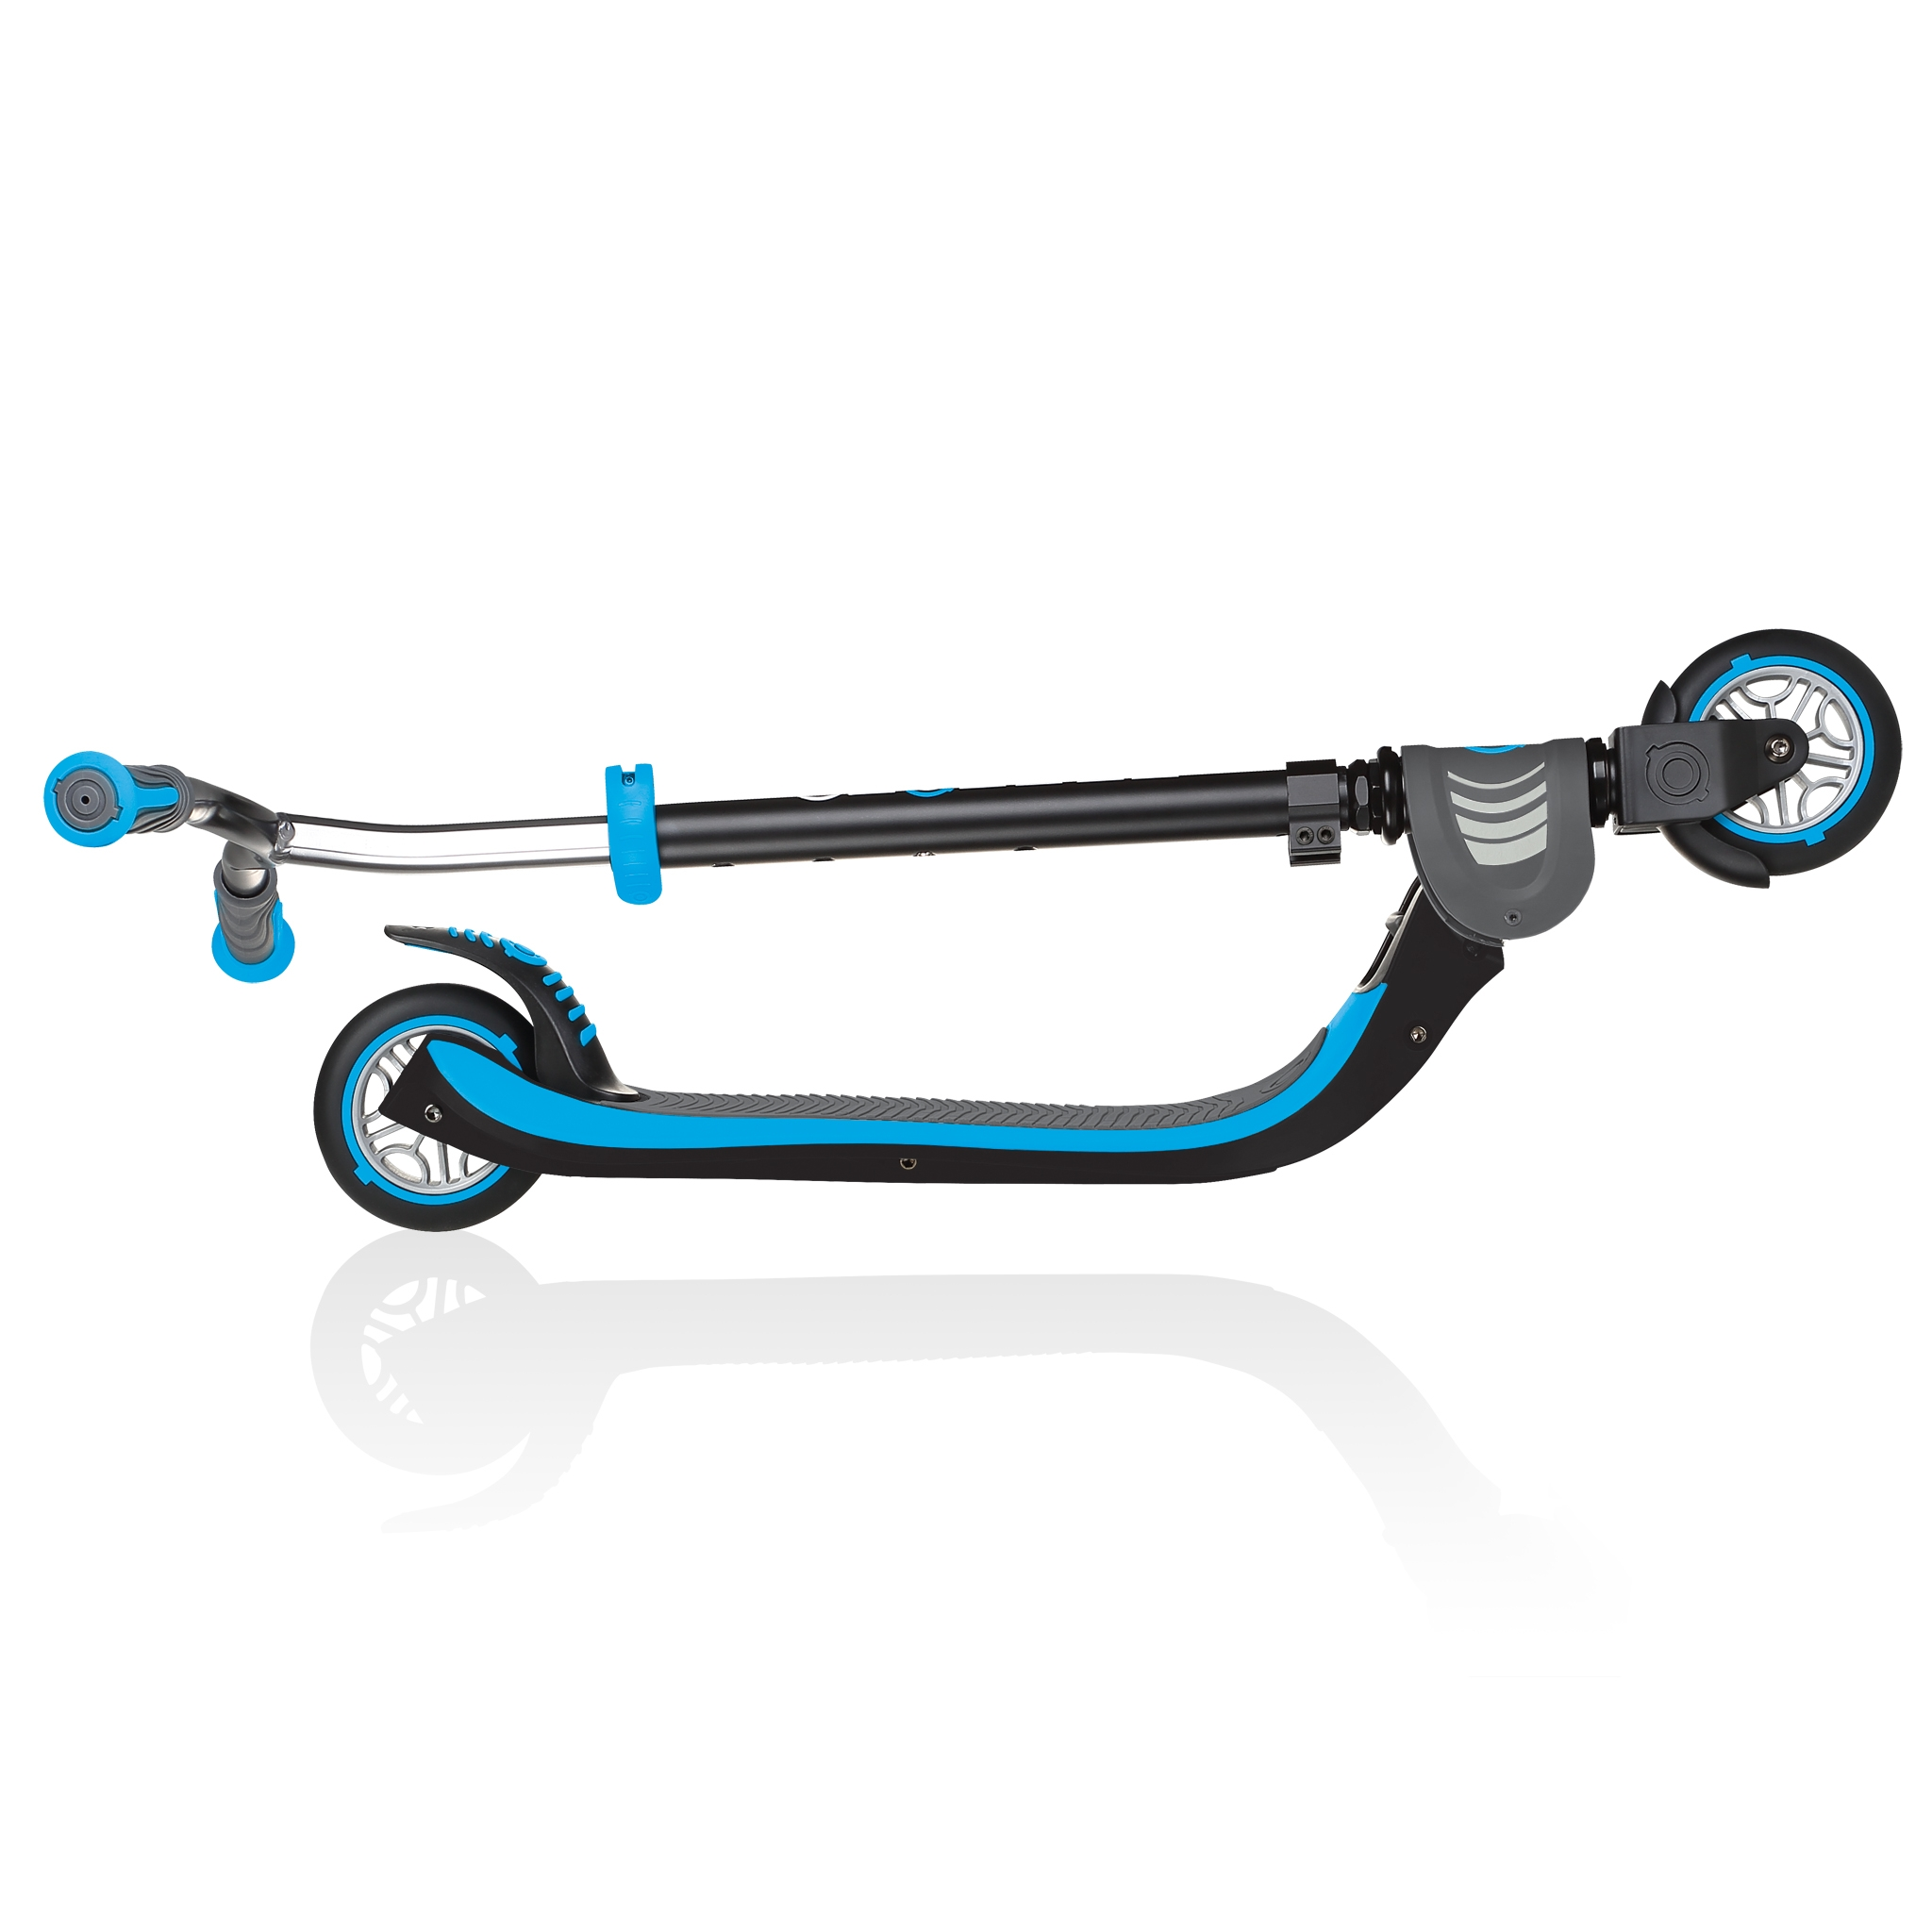 FLOW-FOLDABLE-125-2-wheel-foldable-scooter-for-kids-sky-blue